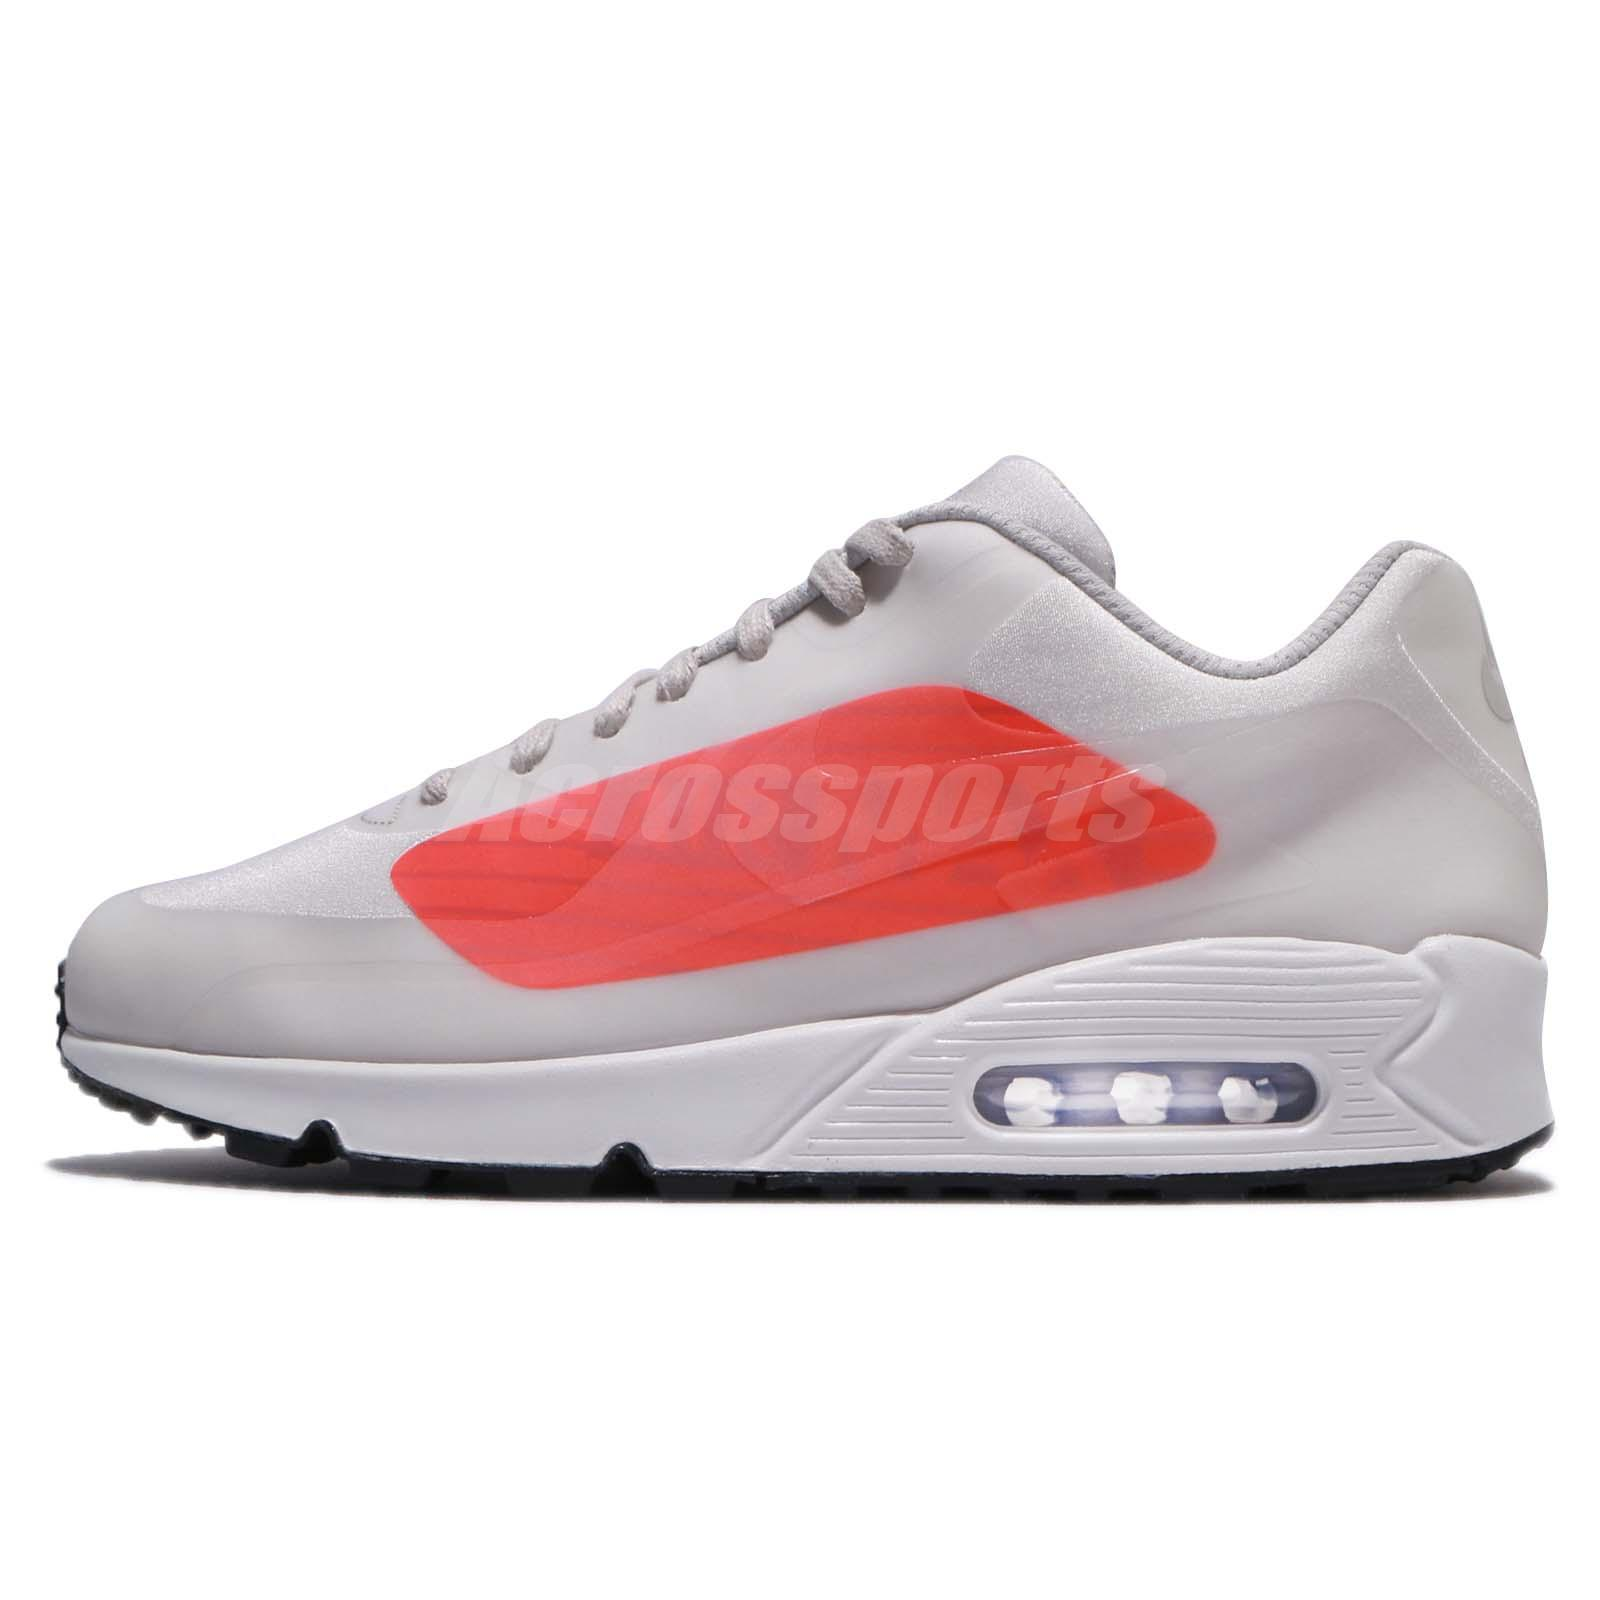 Nike Air Max 90 NS GPX Neutral Grey Bright Crimson Big Logo Men Shoes AJ7182 -001 39b75cfd3